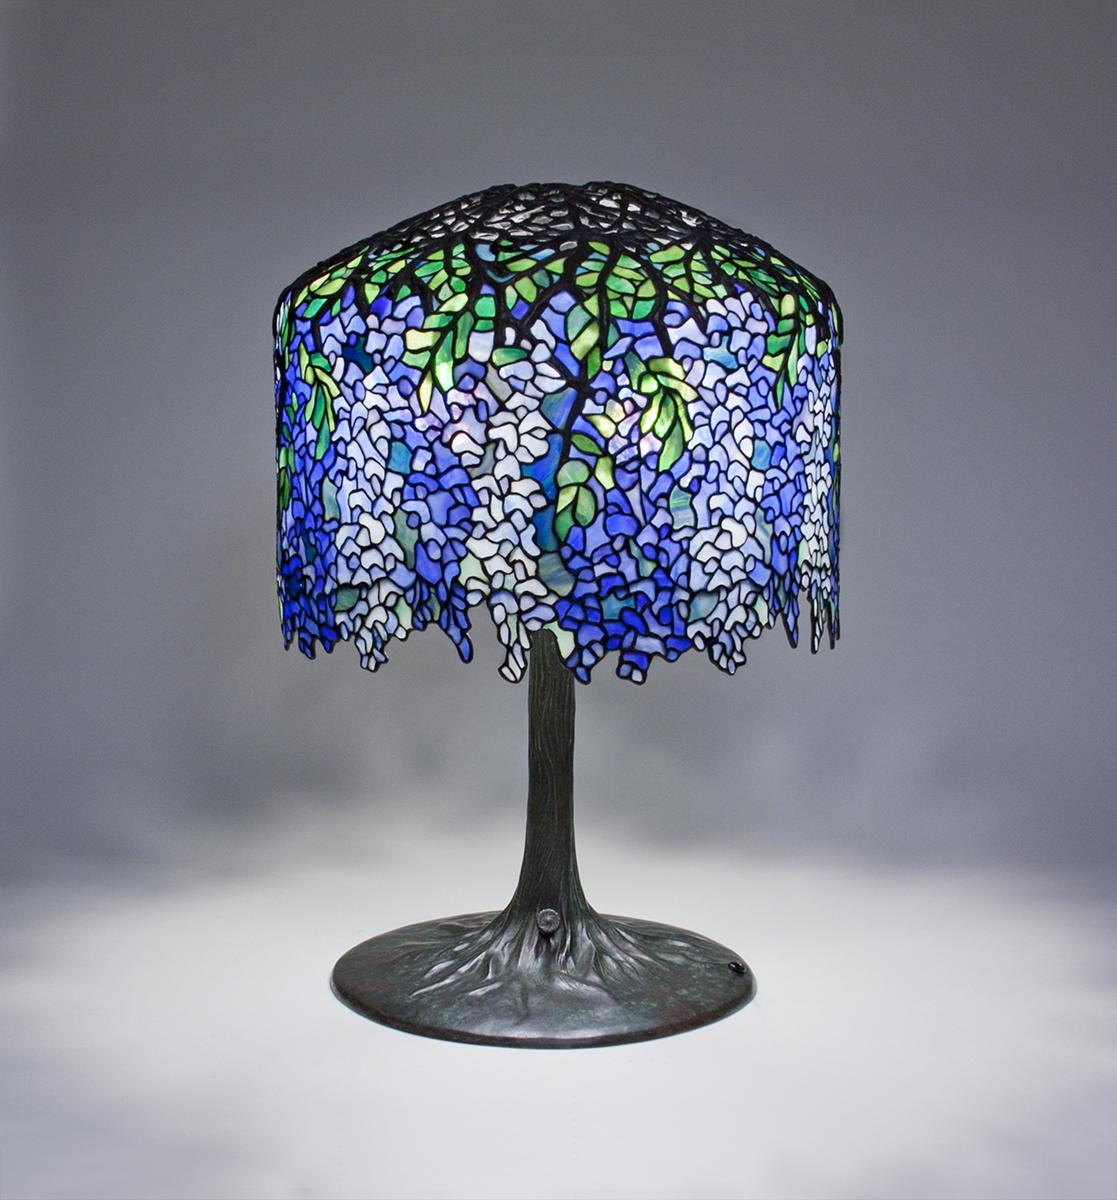 Tiffany Studios   Wisteria  Table Lamp 1